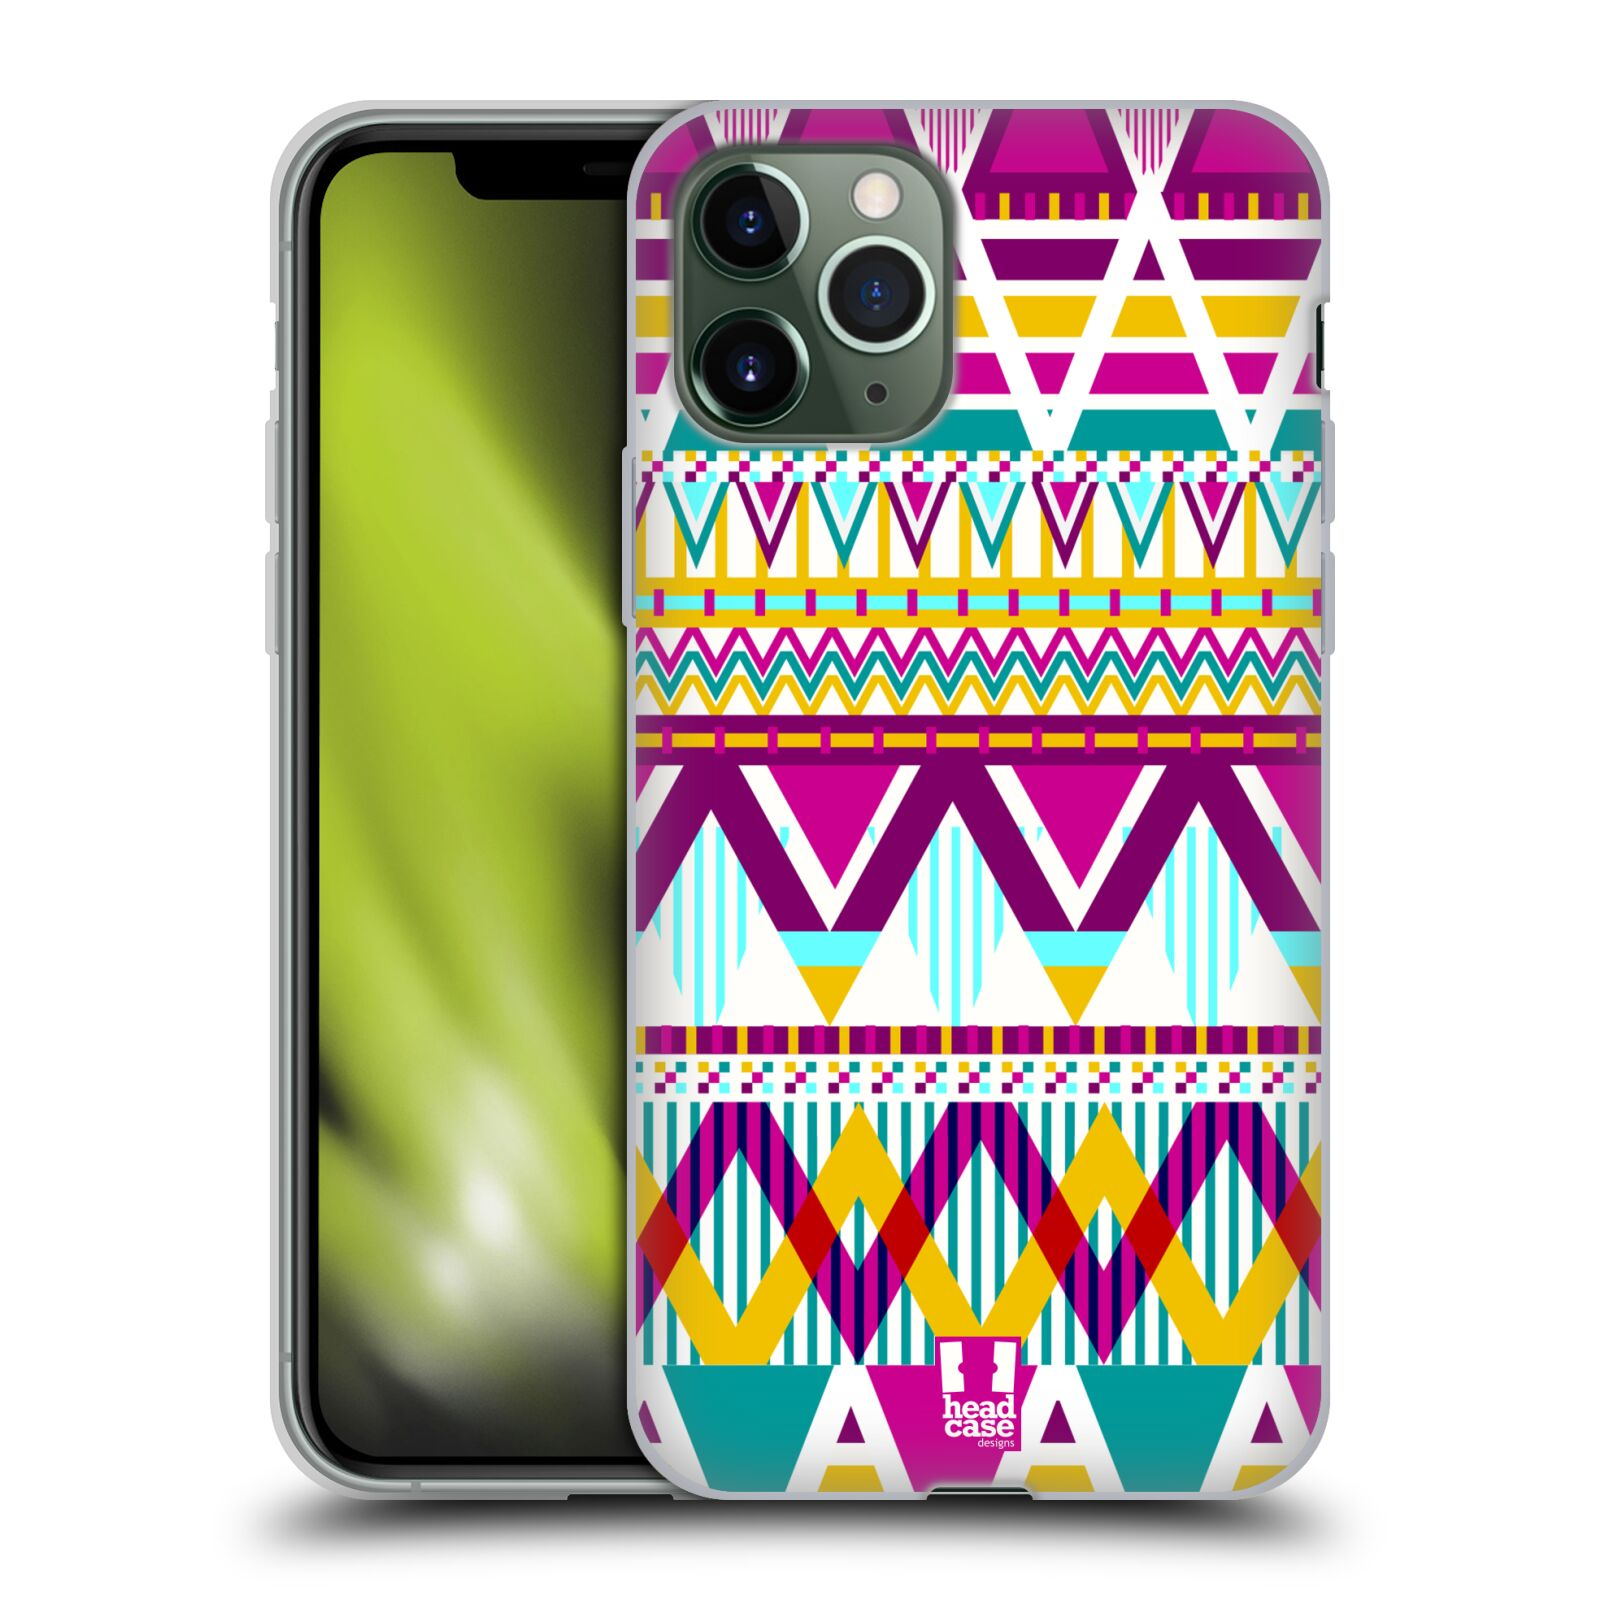 original krytu na iphone xs max , Silikonové pouzdro na mobil Apple iPhone 11 Pro - Head Case - AZTEC SUGARED